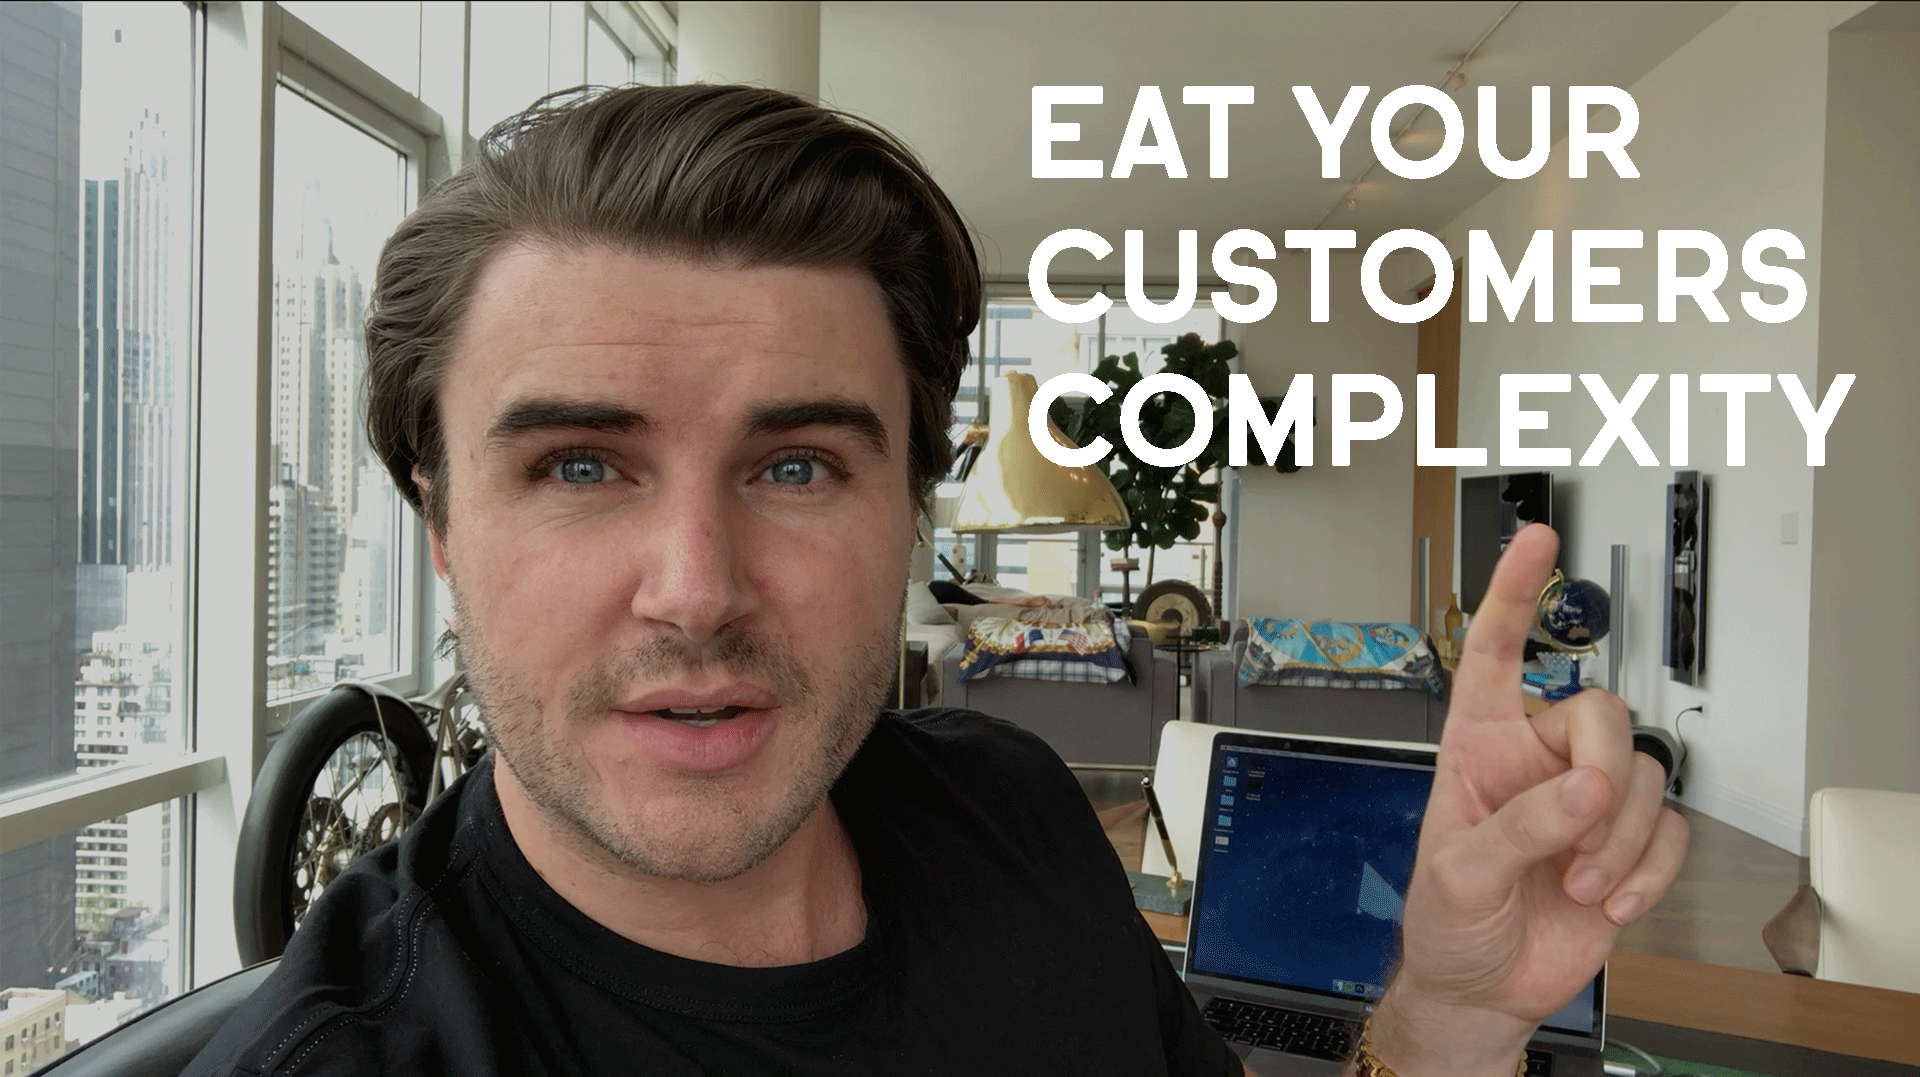 Why You Should Eat Your Customers Complexity